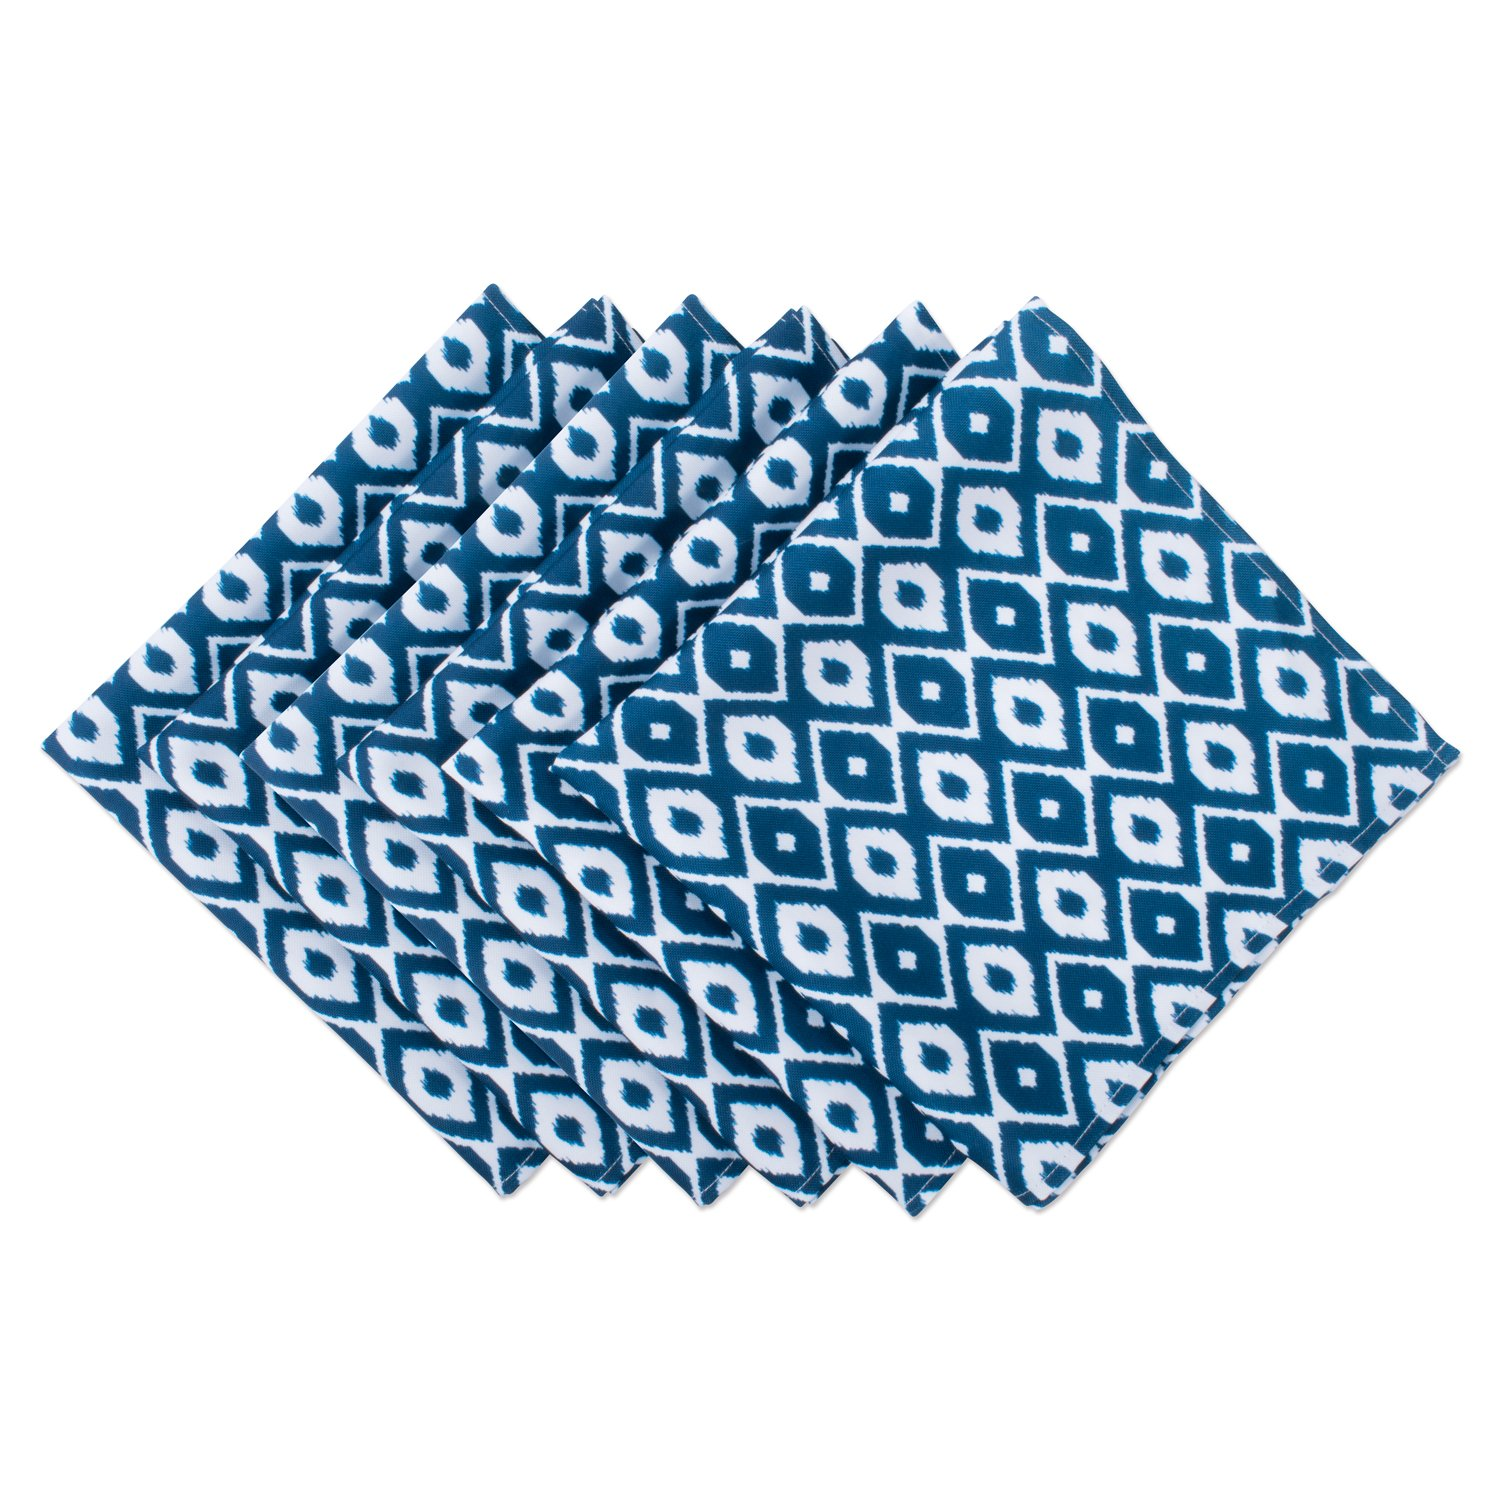 DII CAMZ37513 Cloth S for Everyday Place Settings Family Gatherings Bbq'S Holiday Parties & Catering Events Oversized & Stain Resistant, Blue Ikat by DII